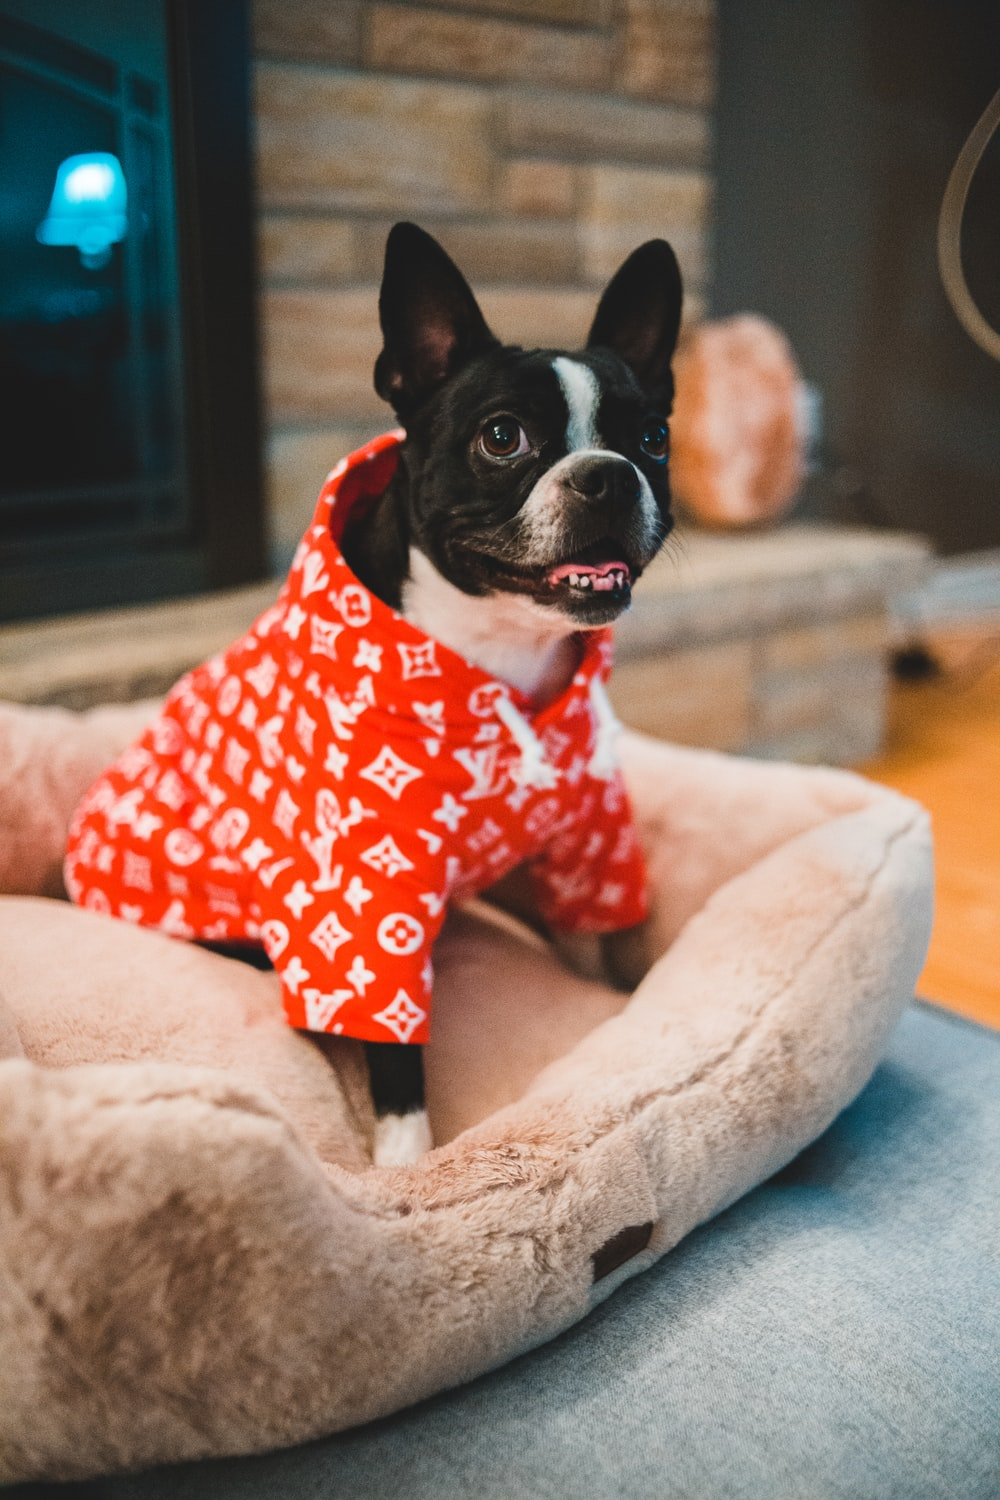 adult black and white French bulldog wearing red apparel sitting on dog bed